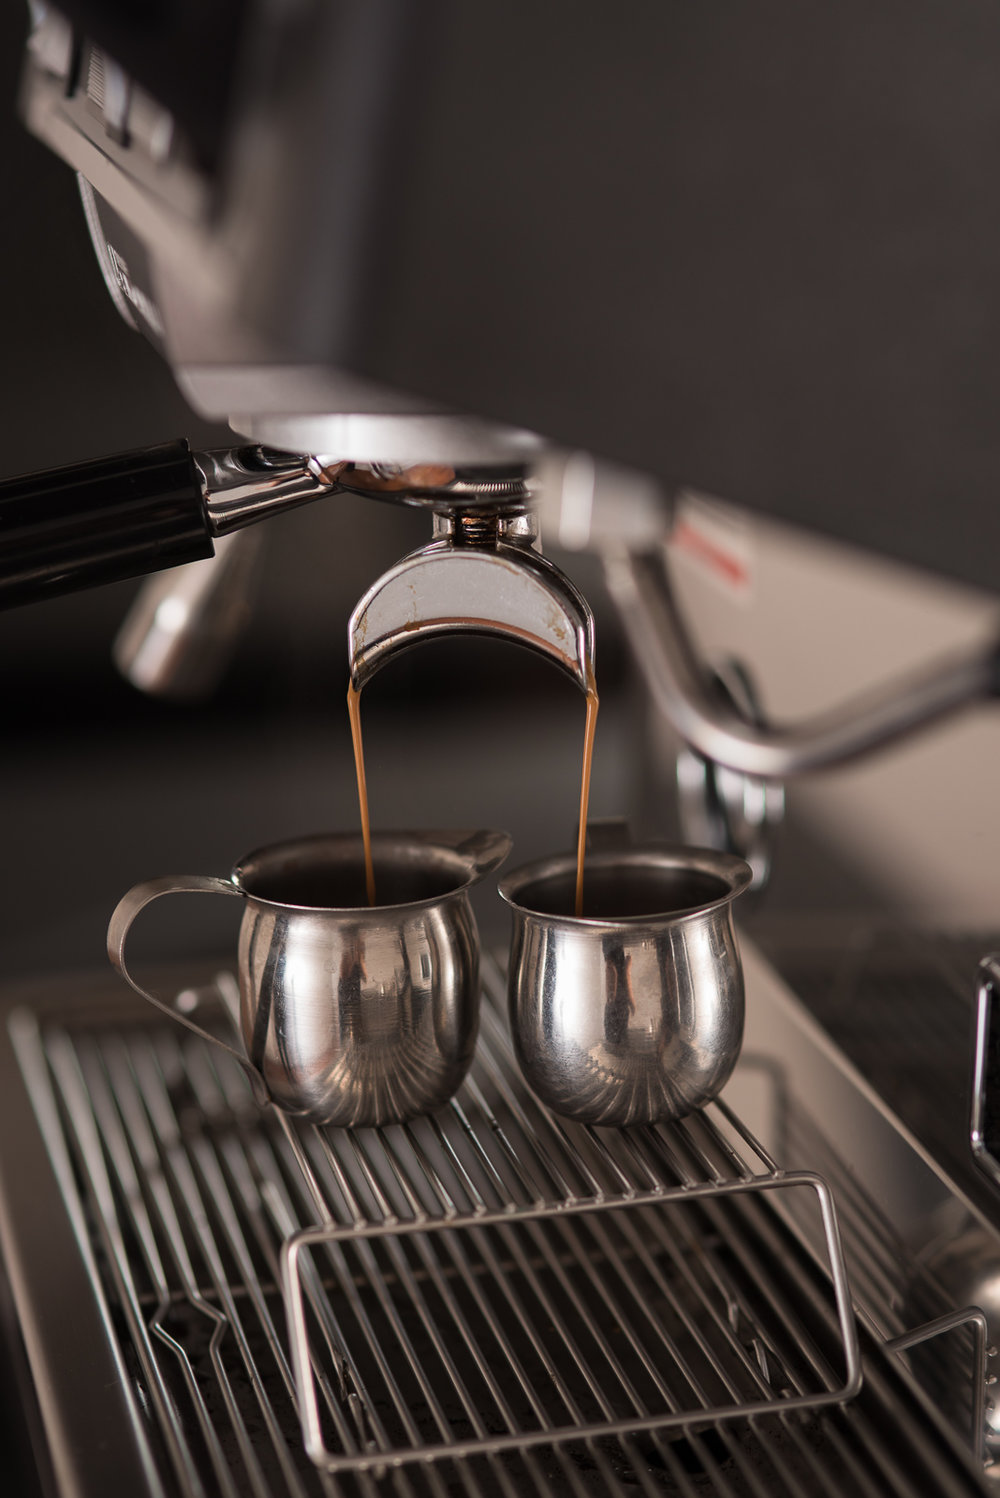 Perfect espresso pour with caramel crema. Espresso Elegance ™  Catering in Seattle, Washington and Portland Oregon.  Photo by Rebecca Ellison Photography, all photo rights reserved.